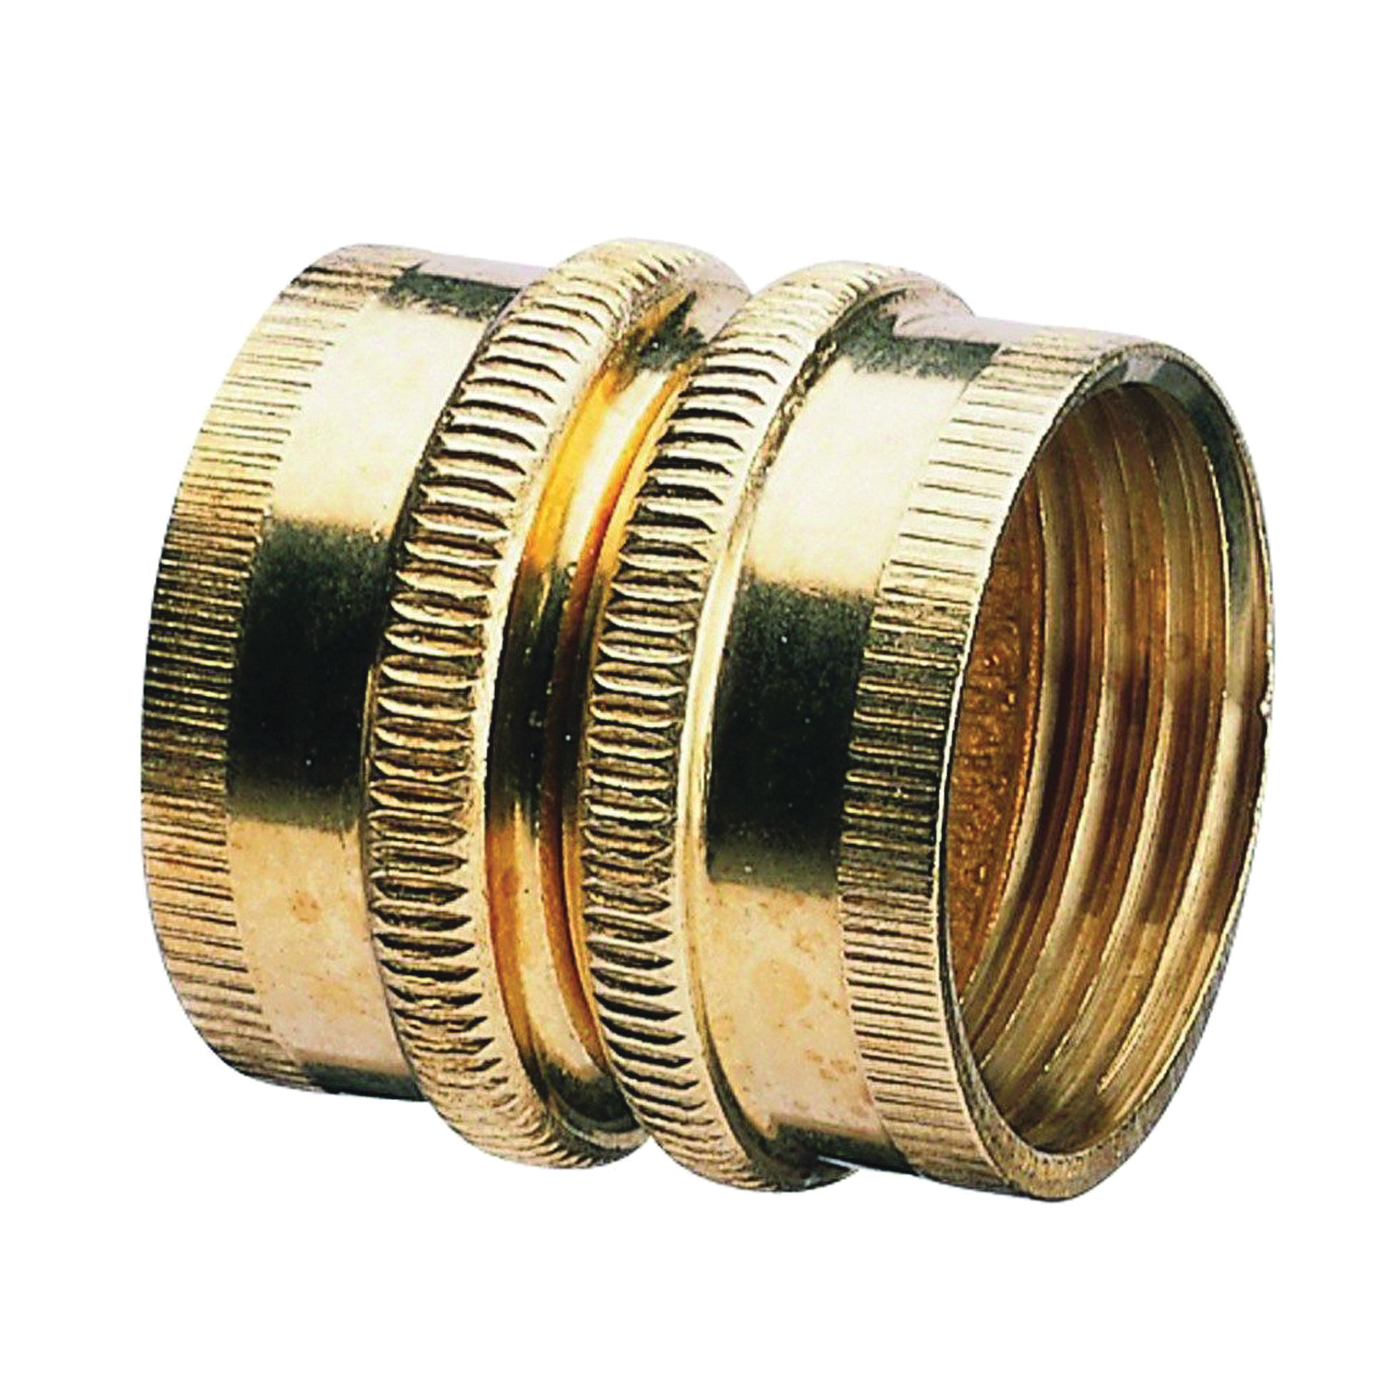 Picture of Gilmour 807734-1001 Hose Adapter, 3/4 x 3/4 in, FNH x FNH, Brass, For: Garden Hose